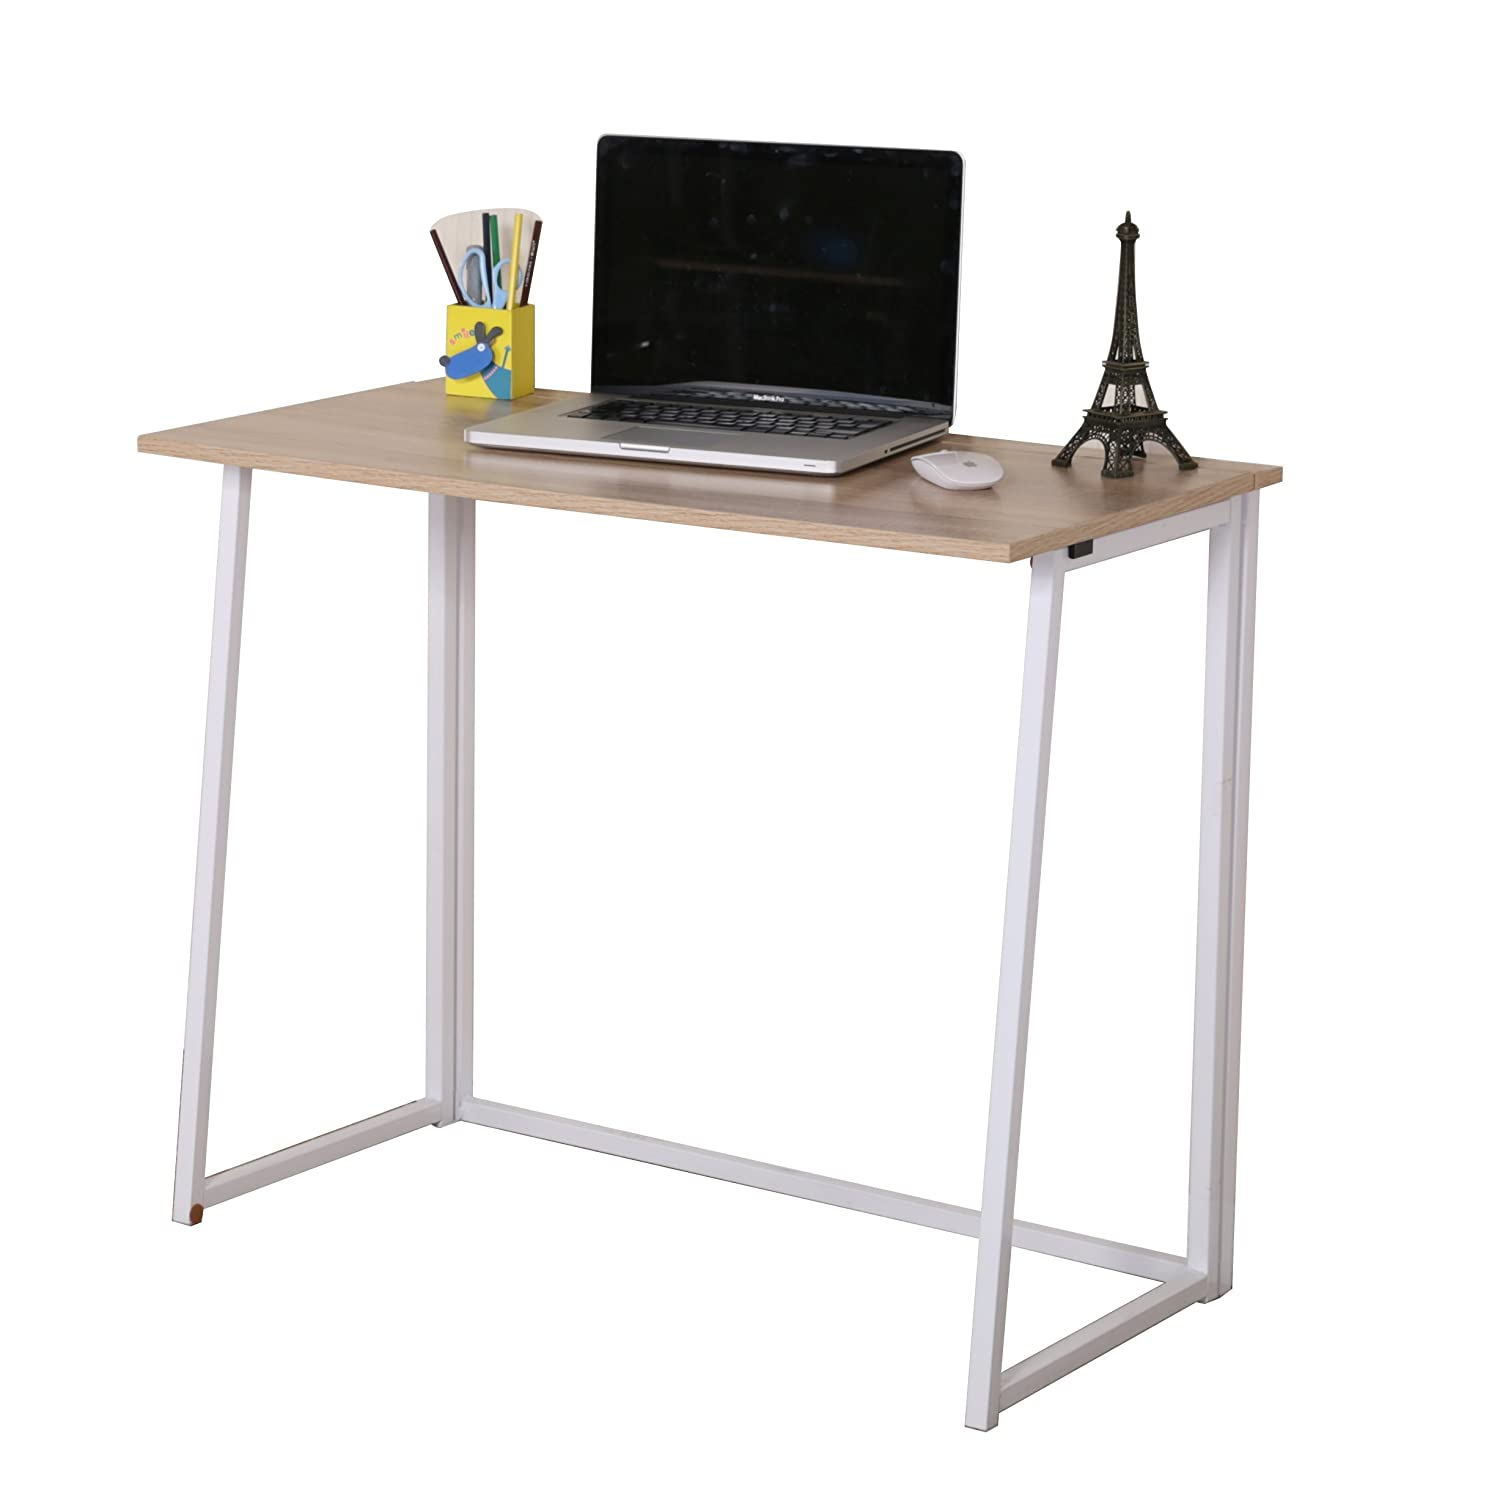 Computer tables - the key to comfortable work at the computer